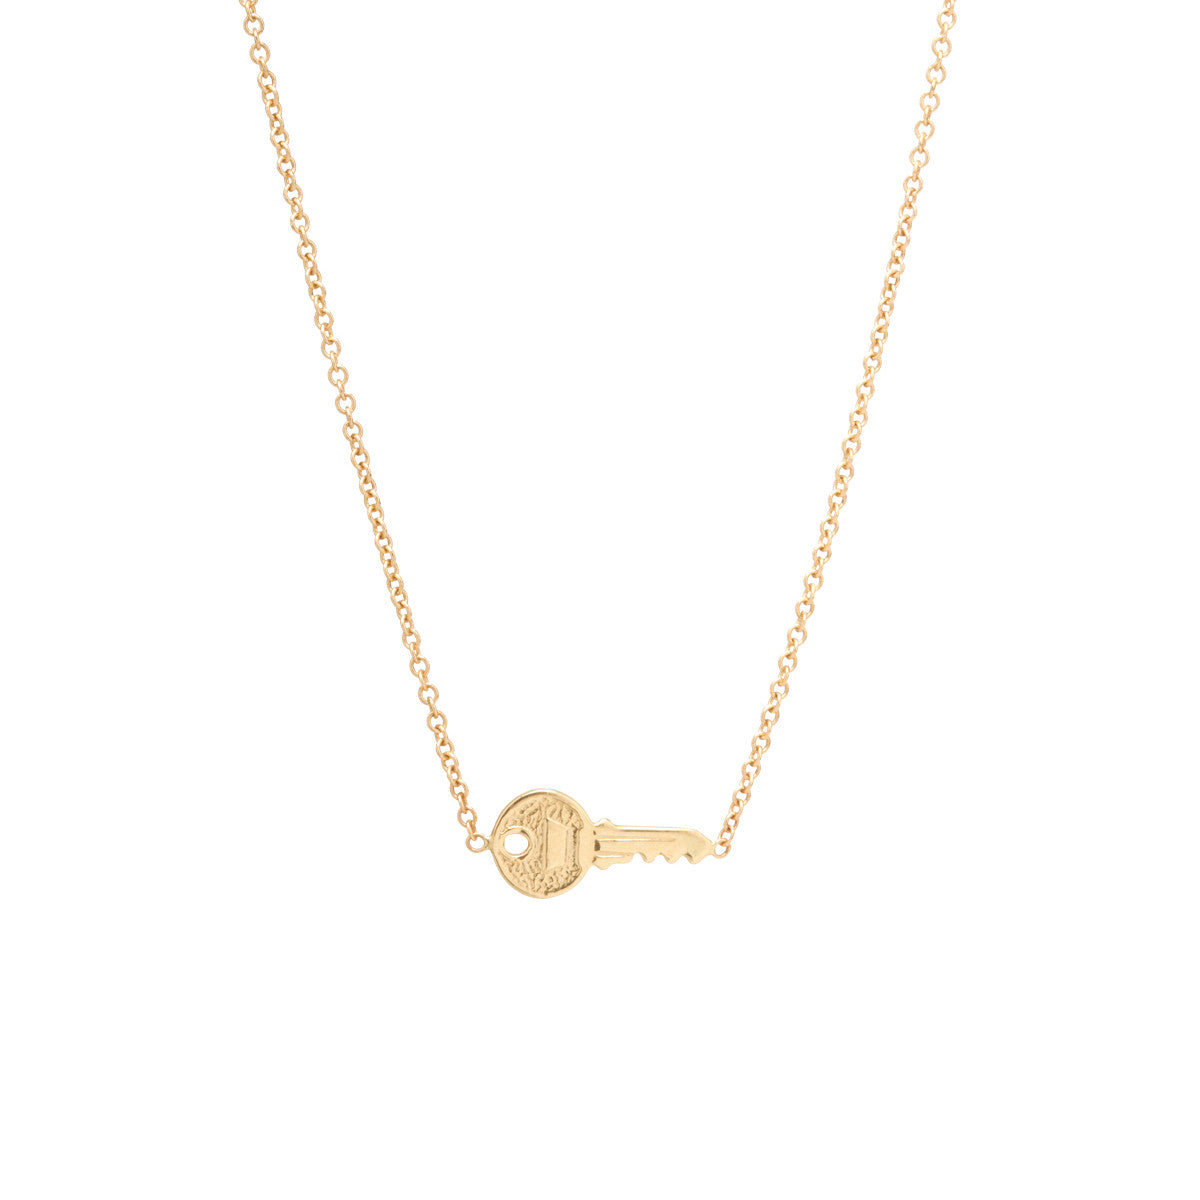 Zoë Chicco – 14k tiny key necklace